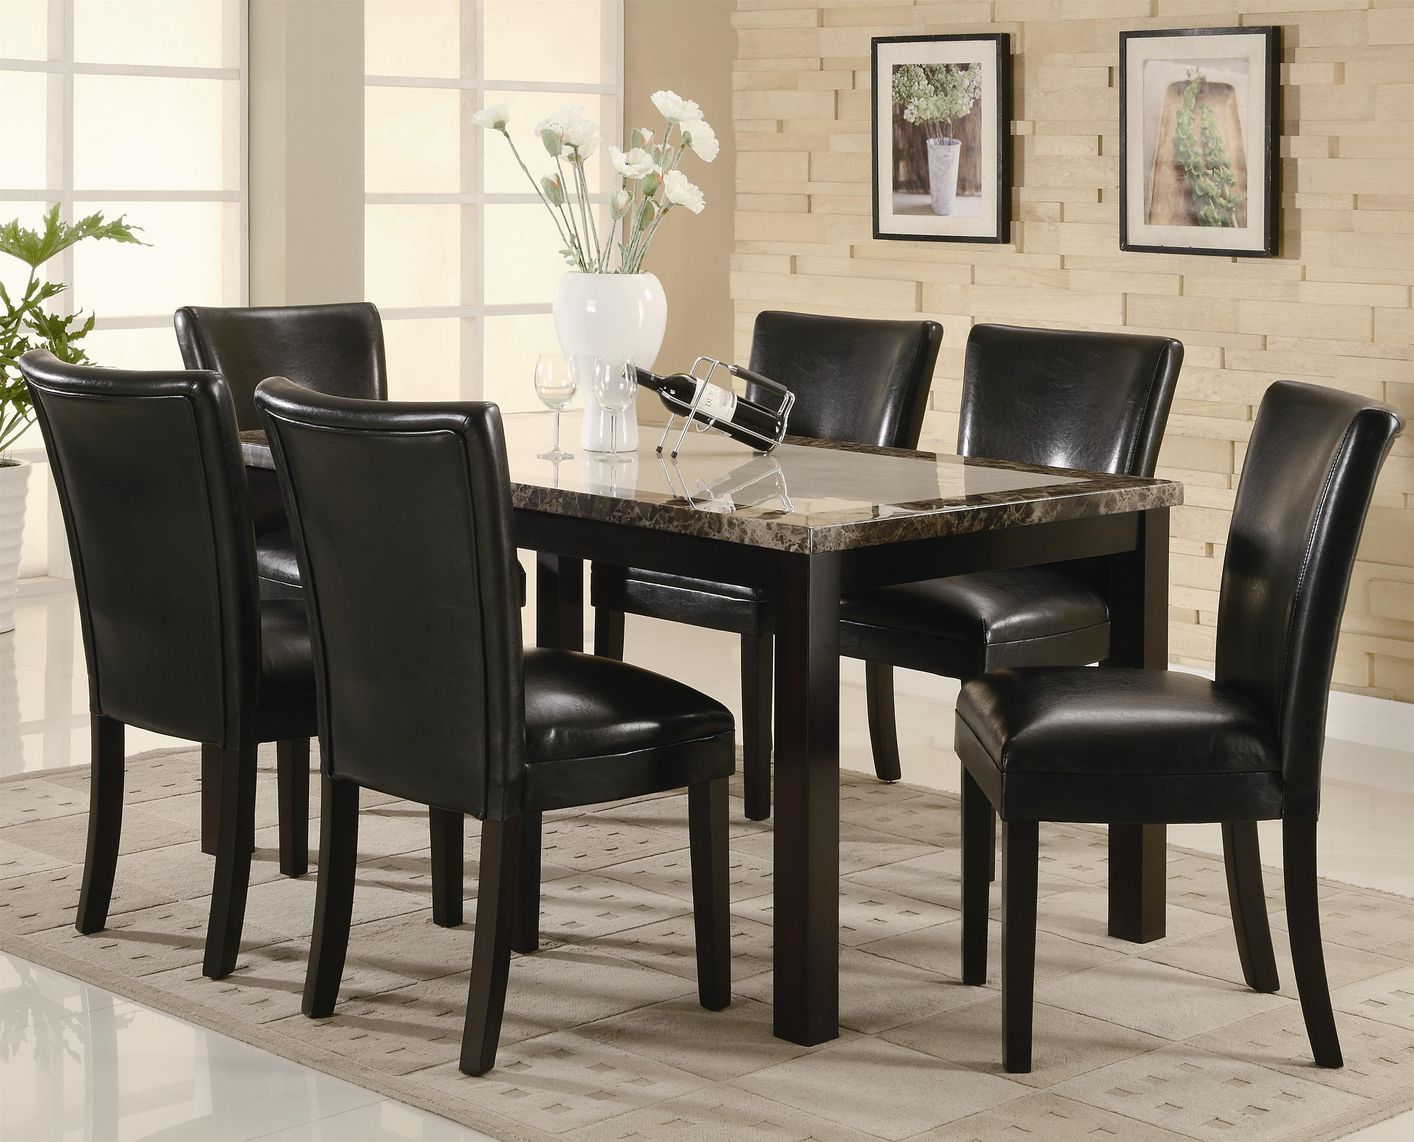 Charming Carter Dark Brown Wood And Marble Dining Table Set